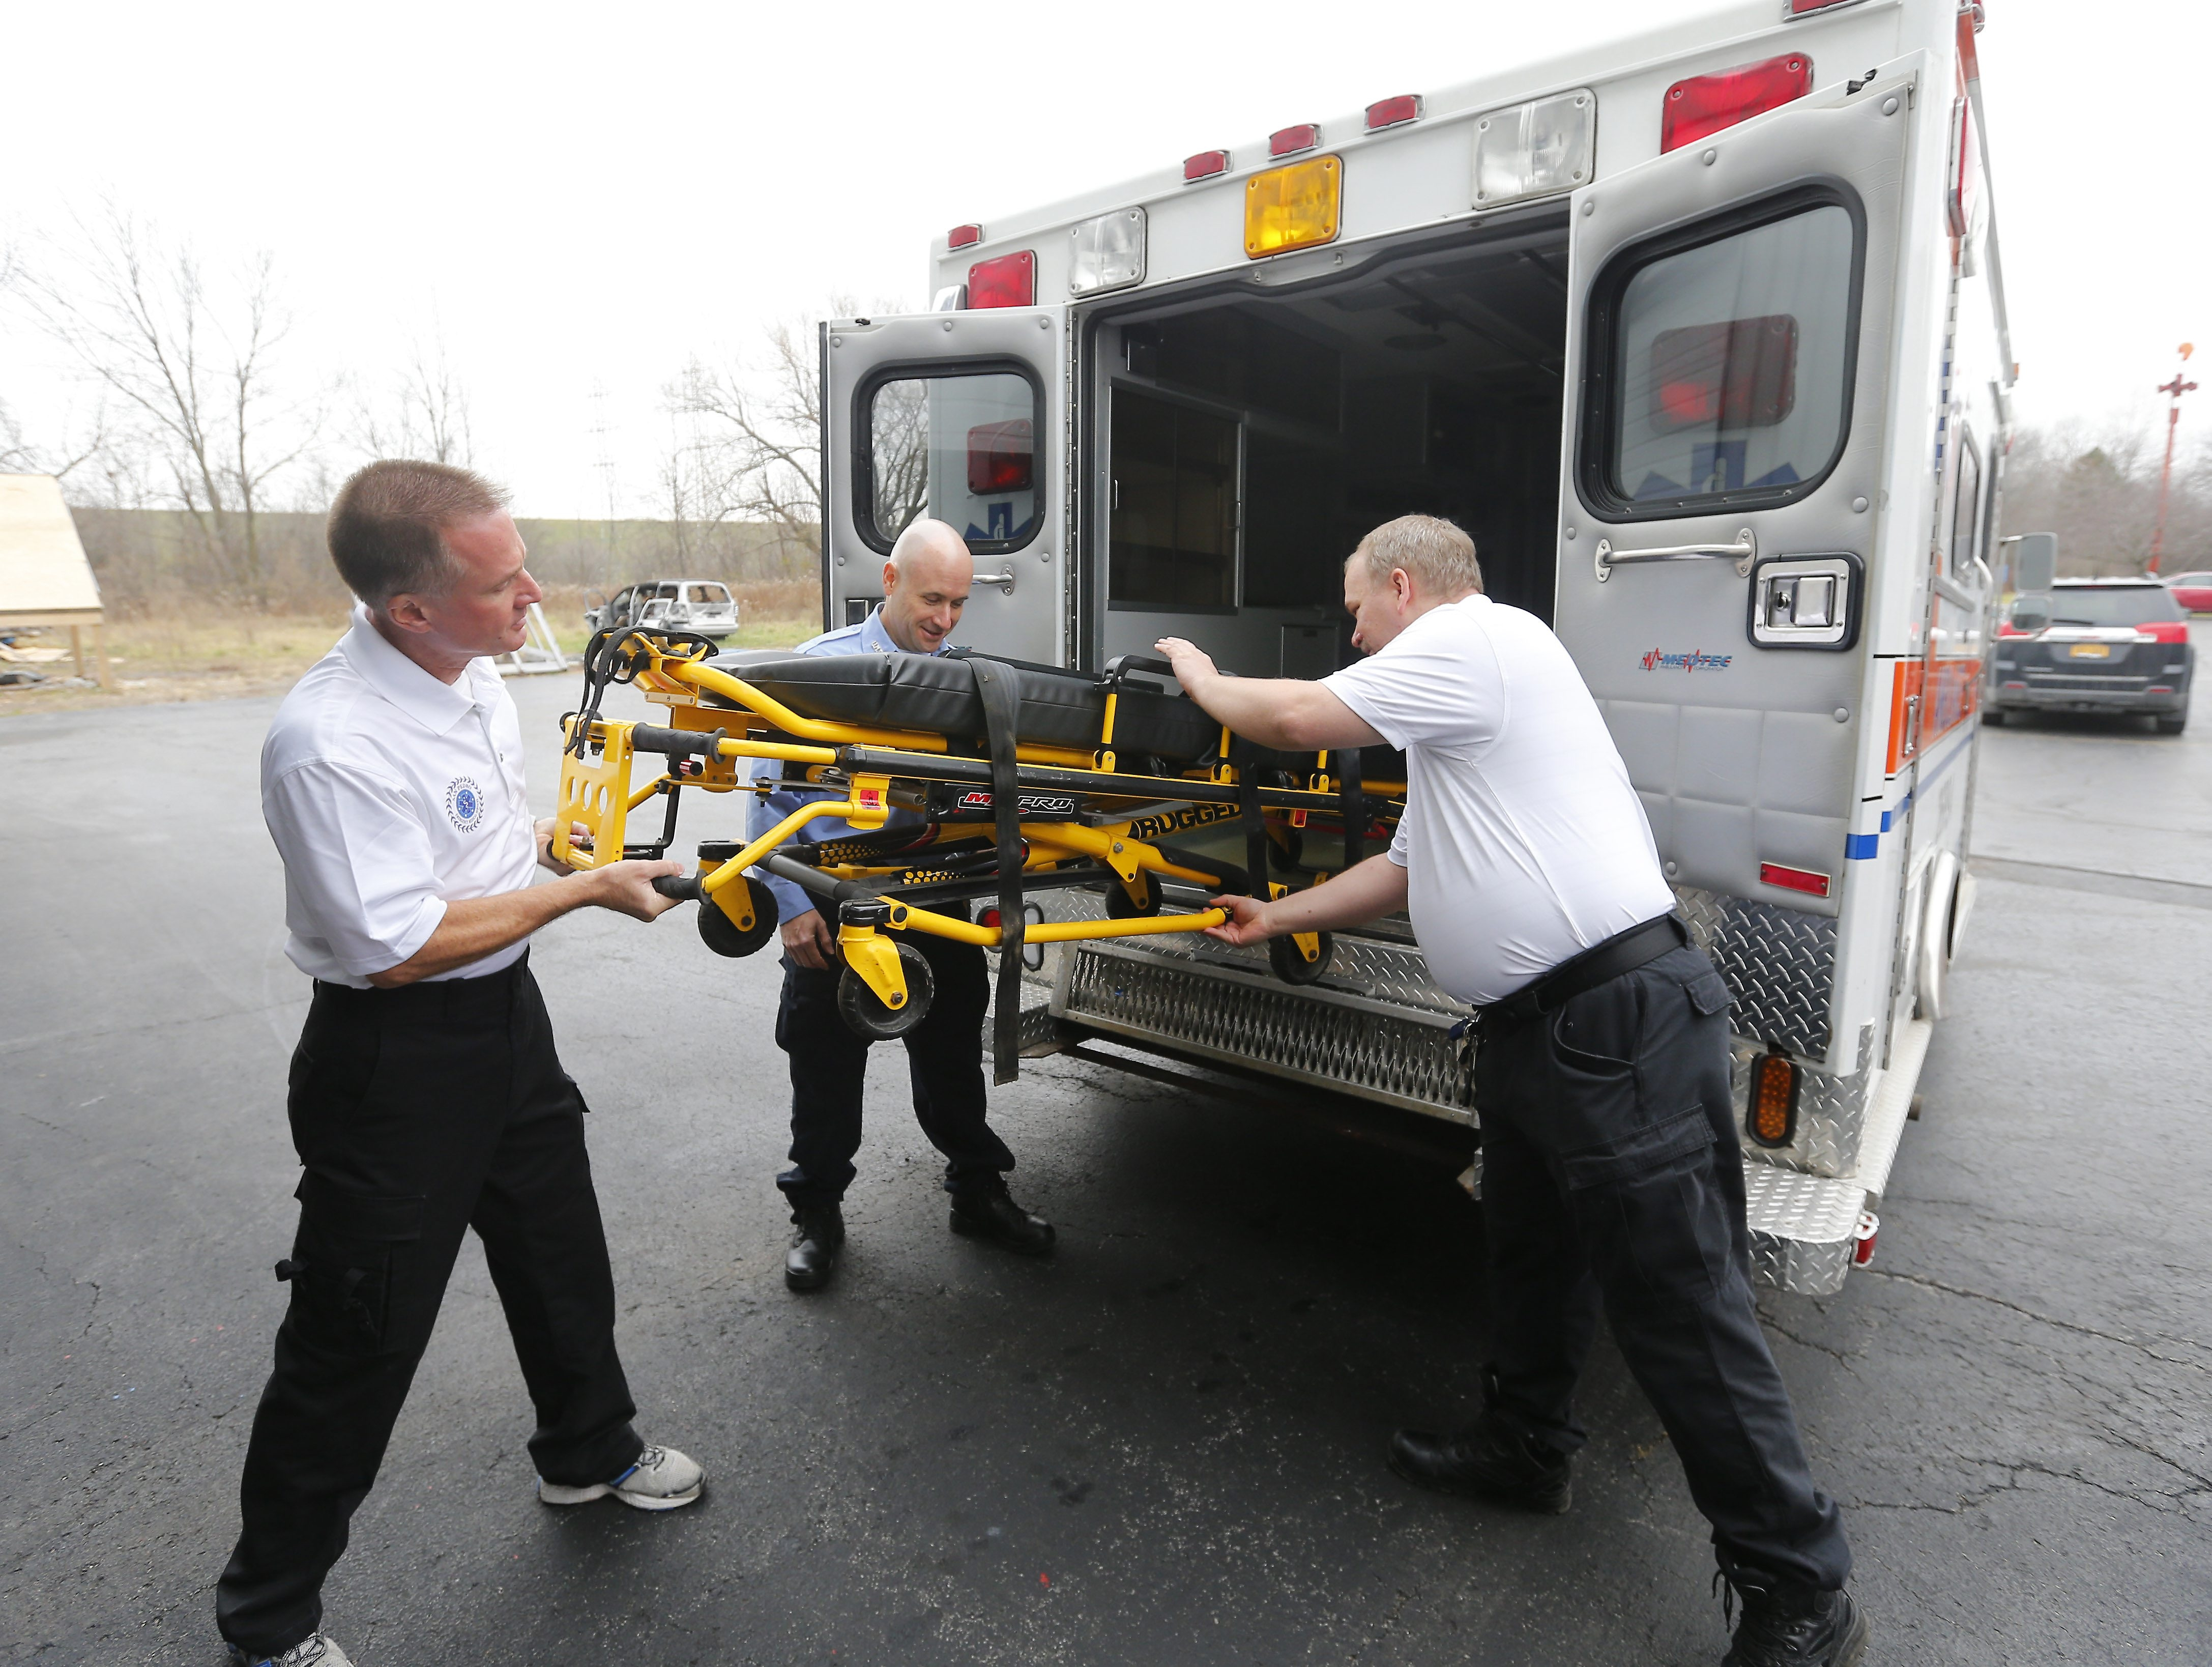 From left, Alex Parmelee, Greg Sitek and Dominick Walenczak load an ambulance with donated medical supplies for its trip to San Pedro, Belize. The Upper Mountain Fire Company is donating the ambulance and equipment to the impoverished town.